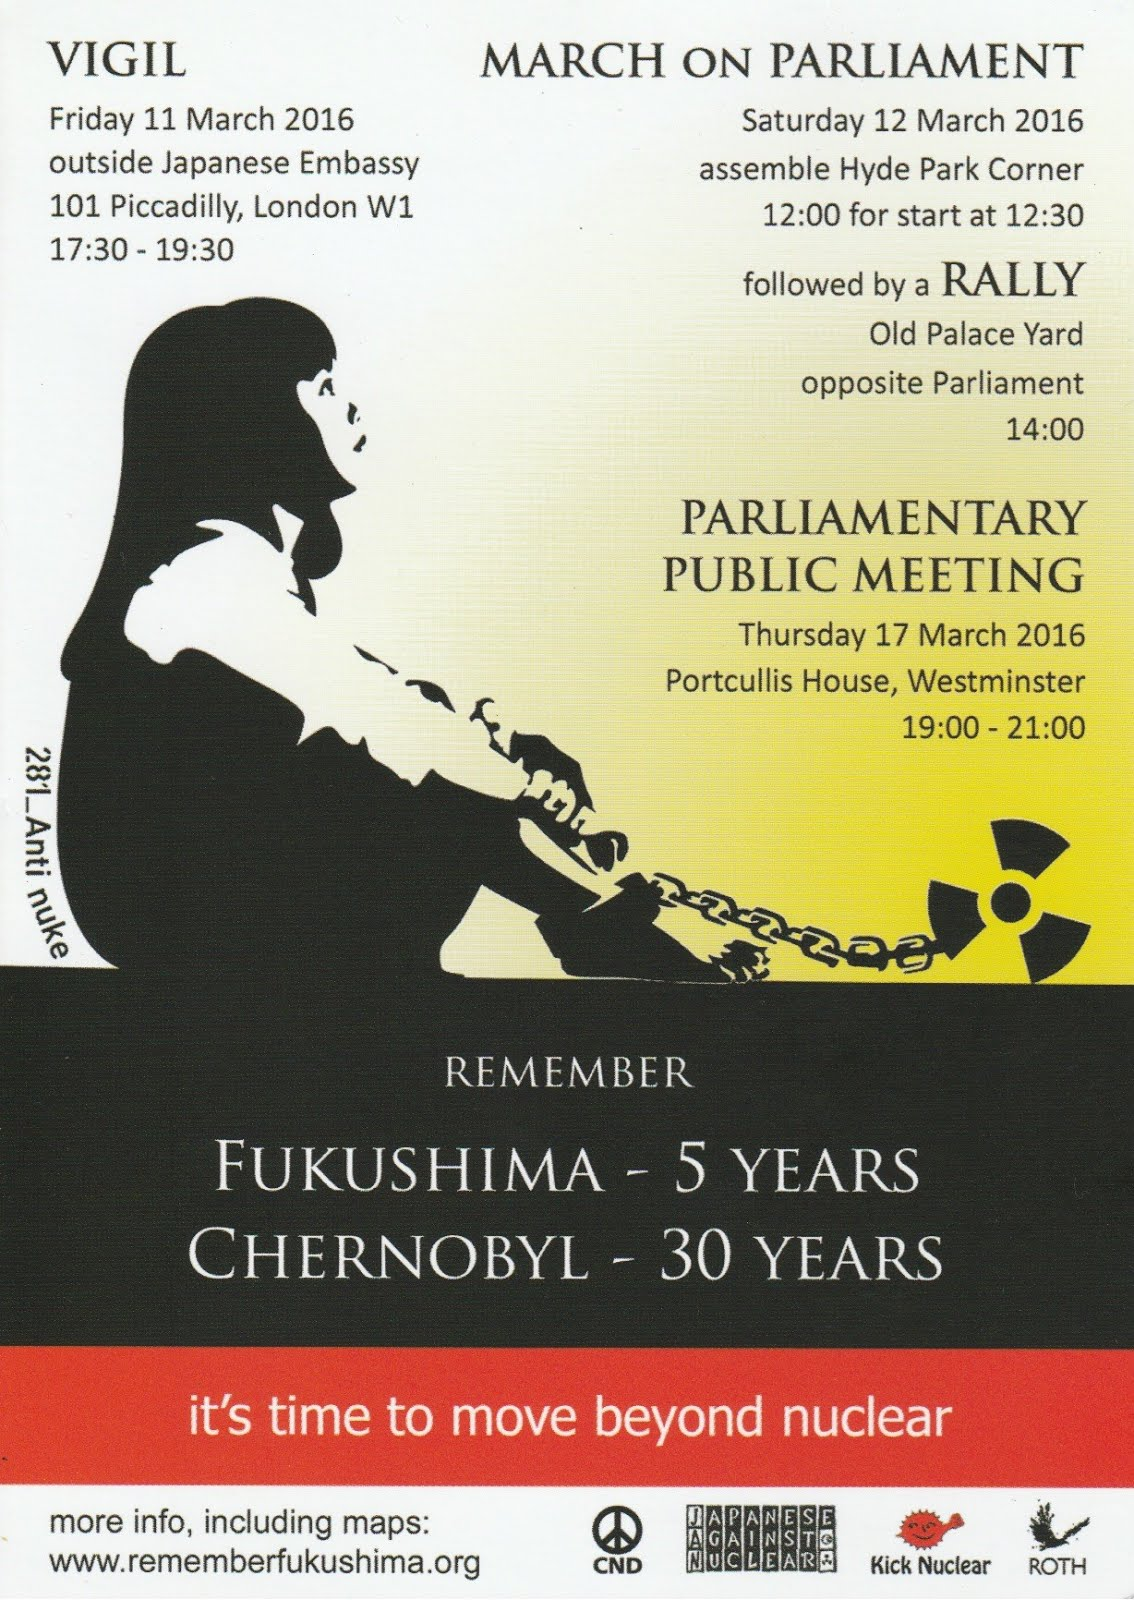 Fukushima Vigil, Rally and Parliamentary Public Meeting.